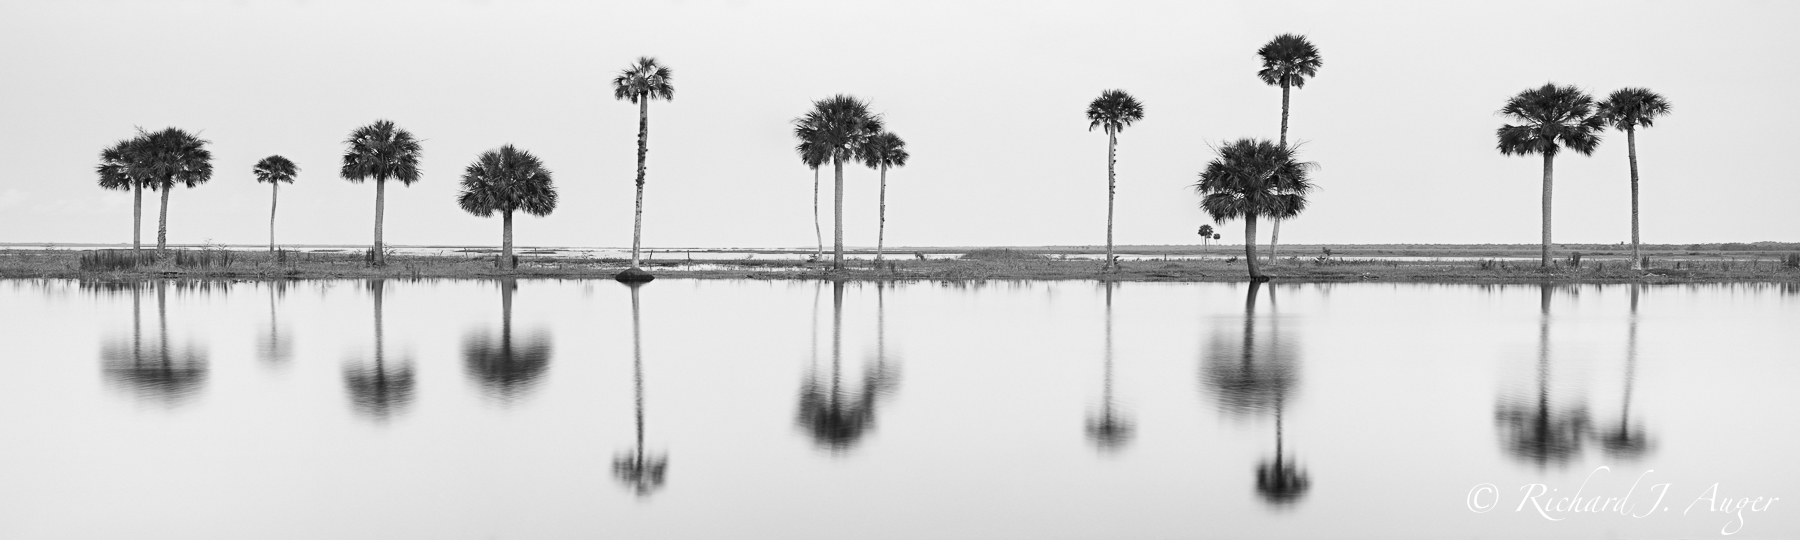 St Johns River, Econlockhatchee, Palm Trees, Abstract, Photograph, Landscape, Black and White